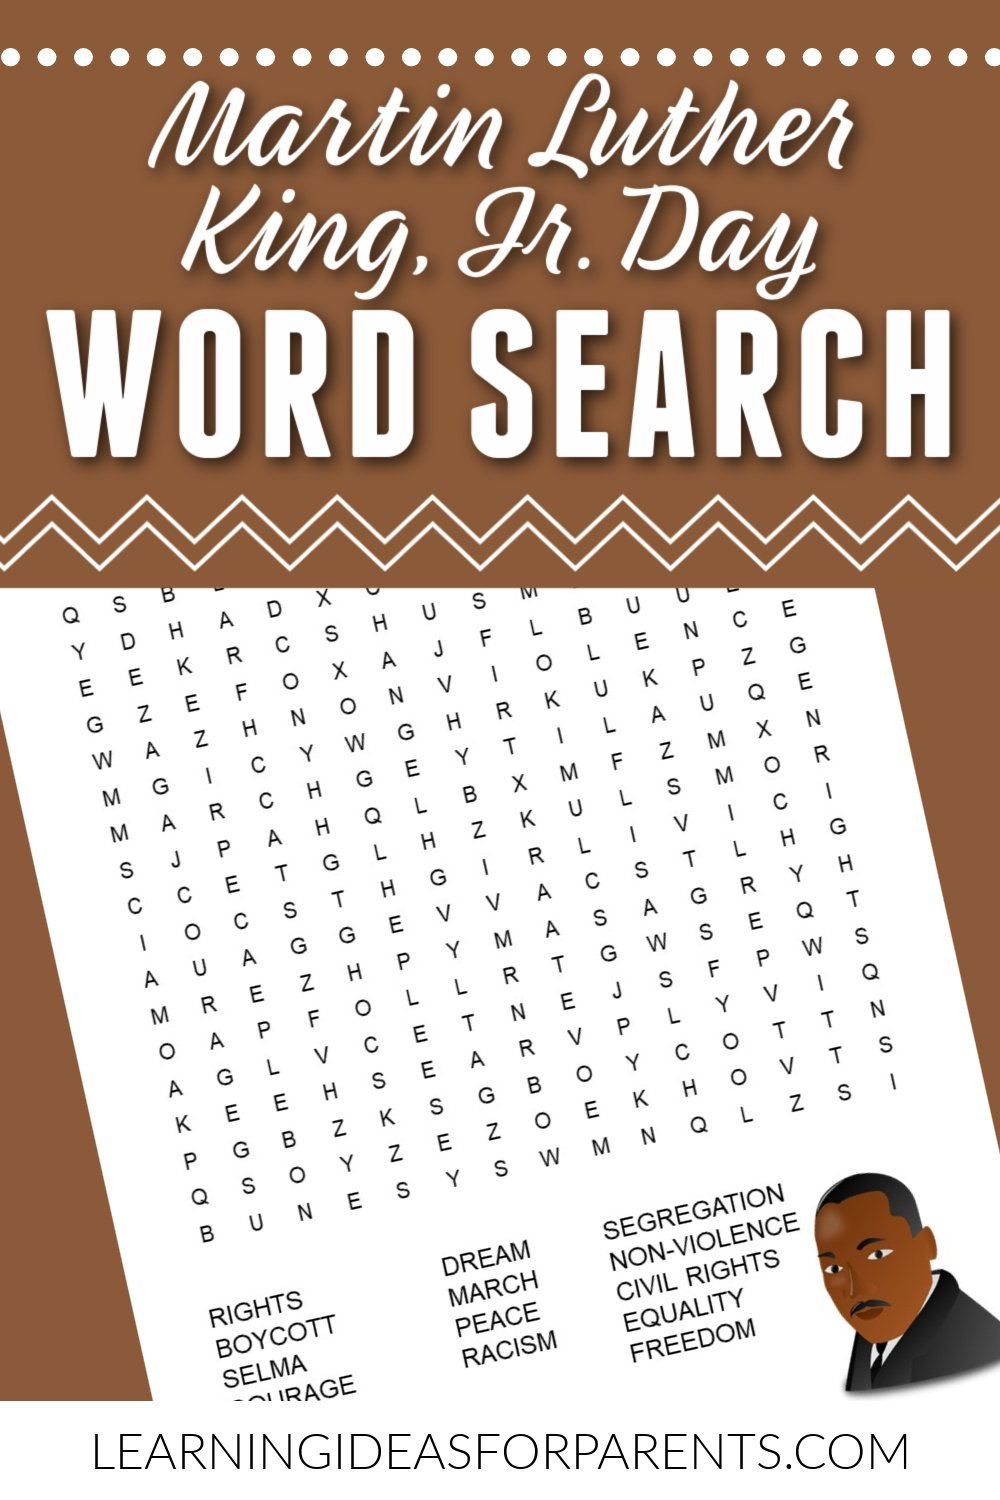 Free printable Martin Luther King, Jr. word search for kids.